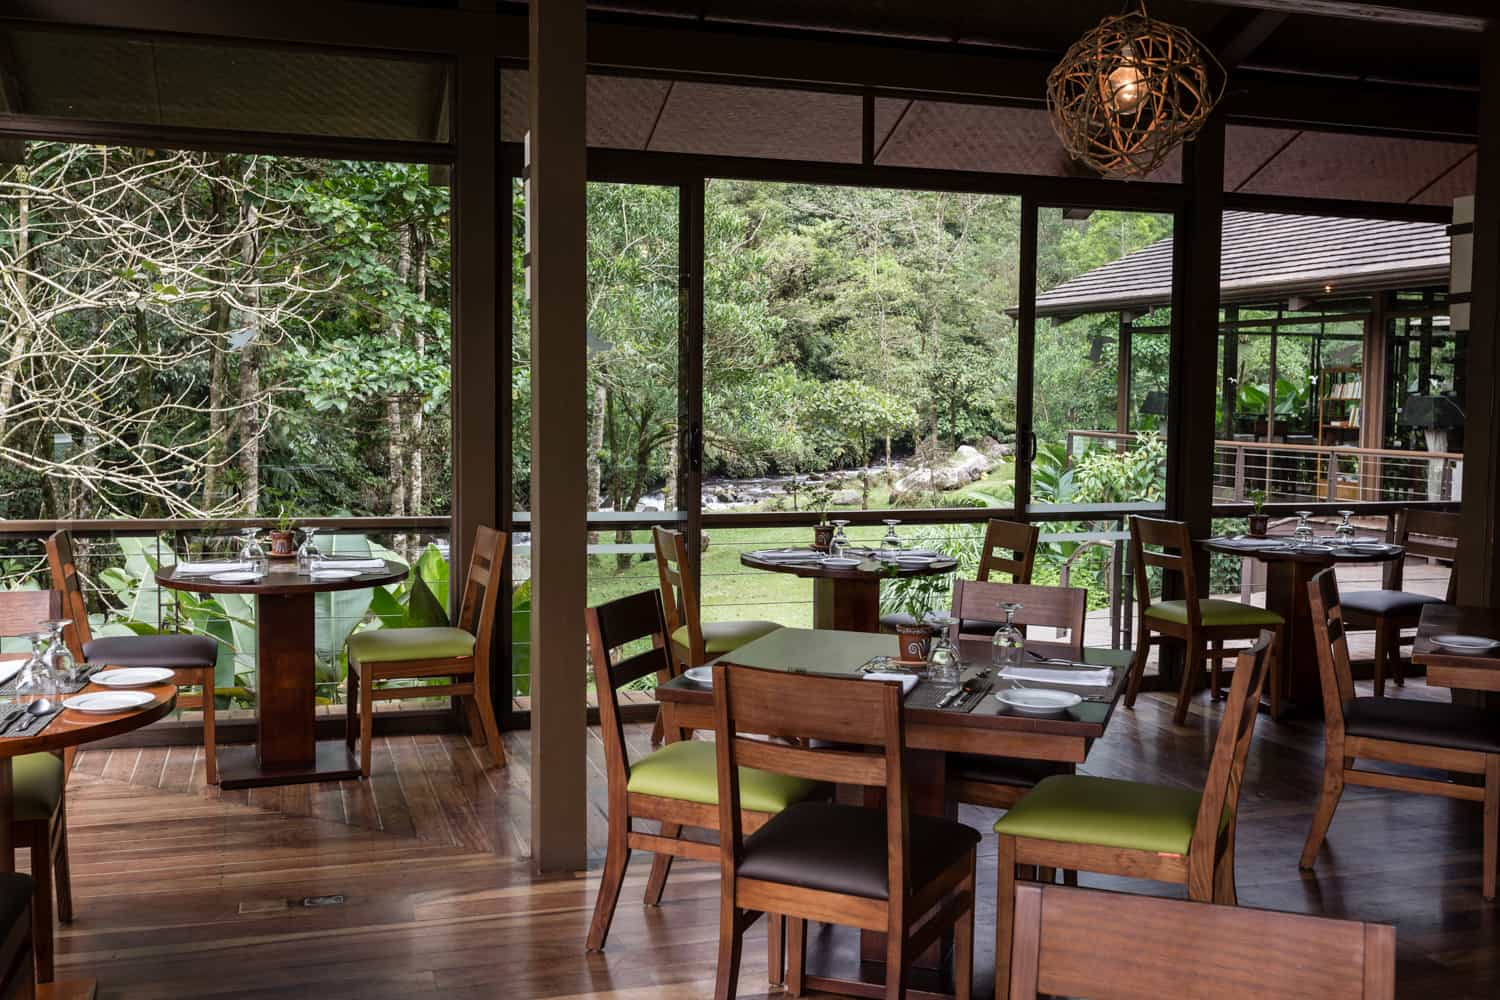 Glass walls in wedding party site with view of river and forest.